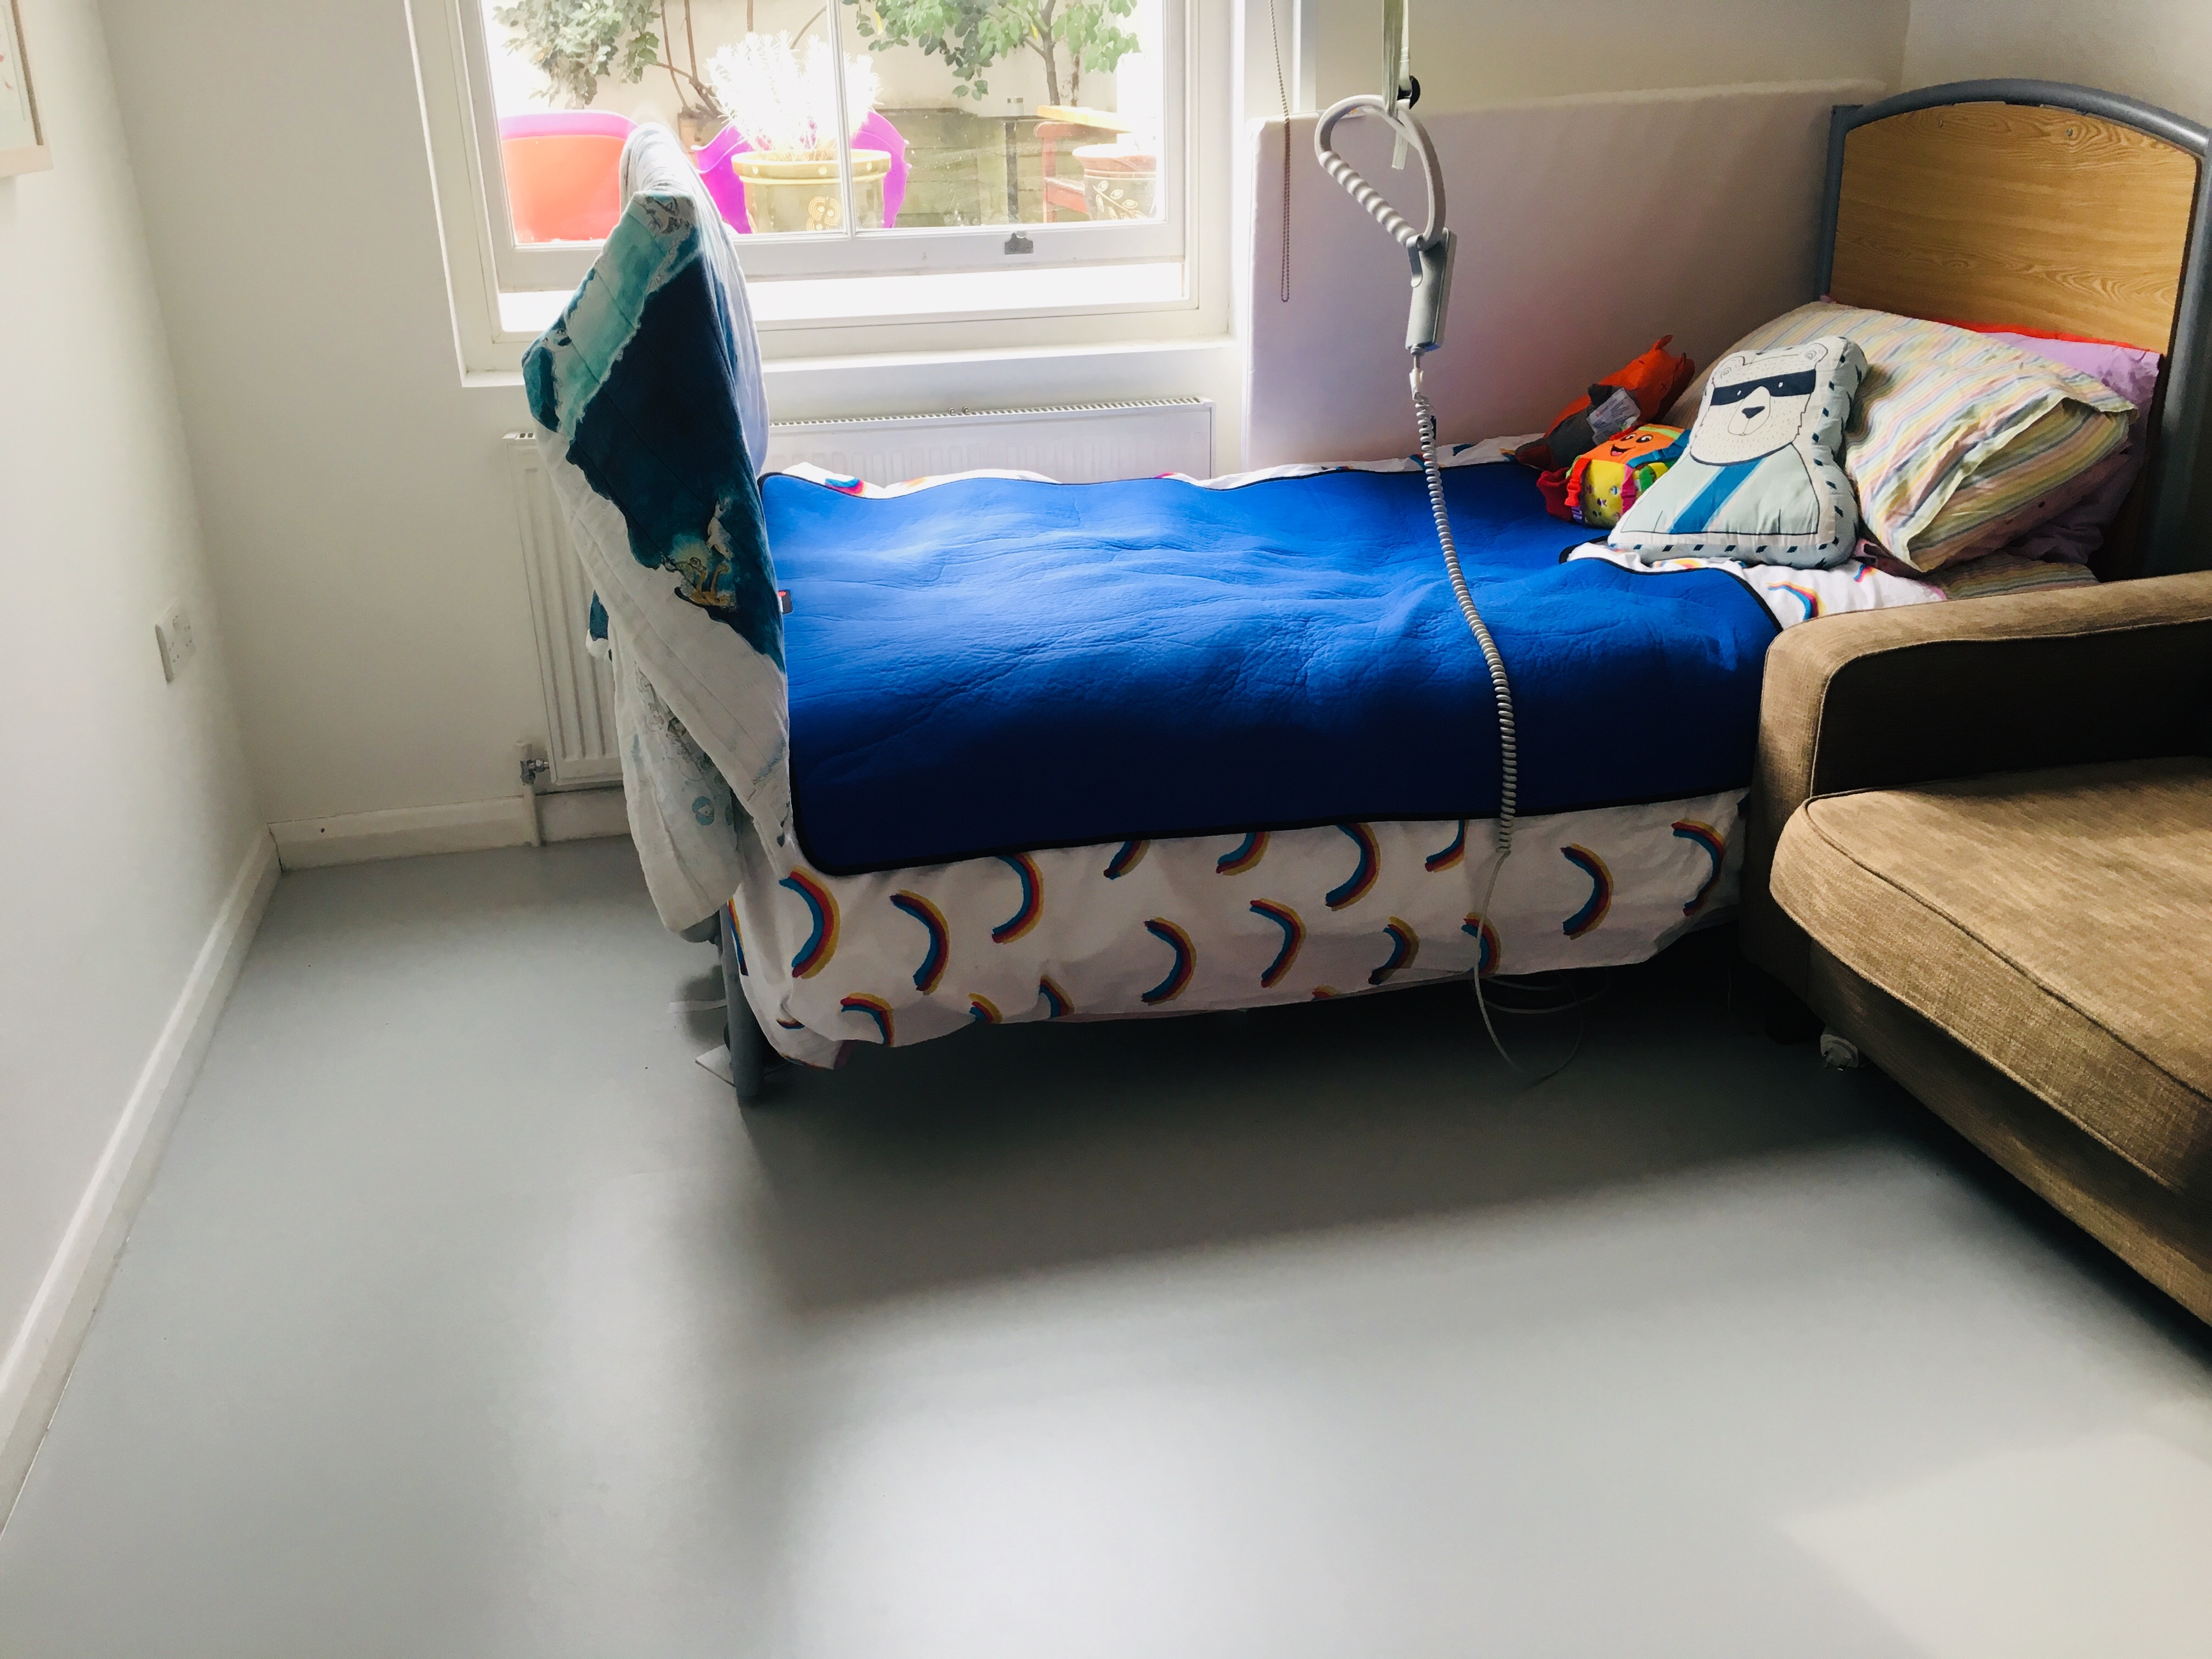 Photo of new grey lino floors with Touretteshero's bed under a big bright sash window looking into a garden where several plant pots are visible. Touretteshero's bedding has rainbows on it and